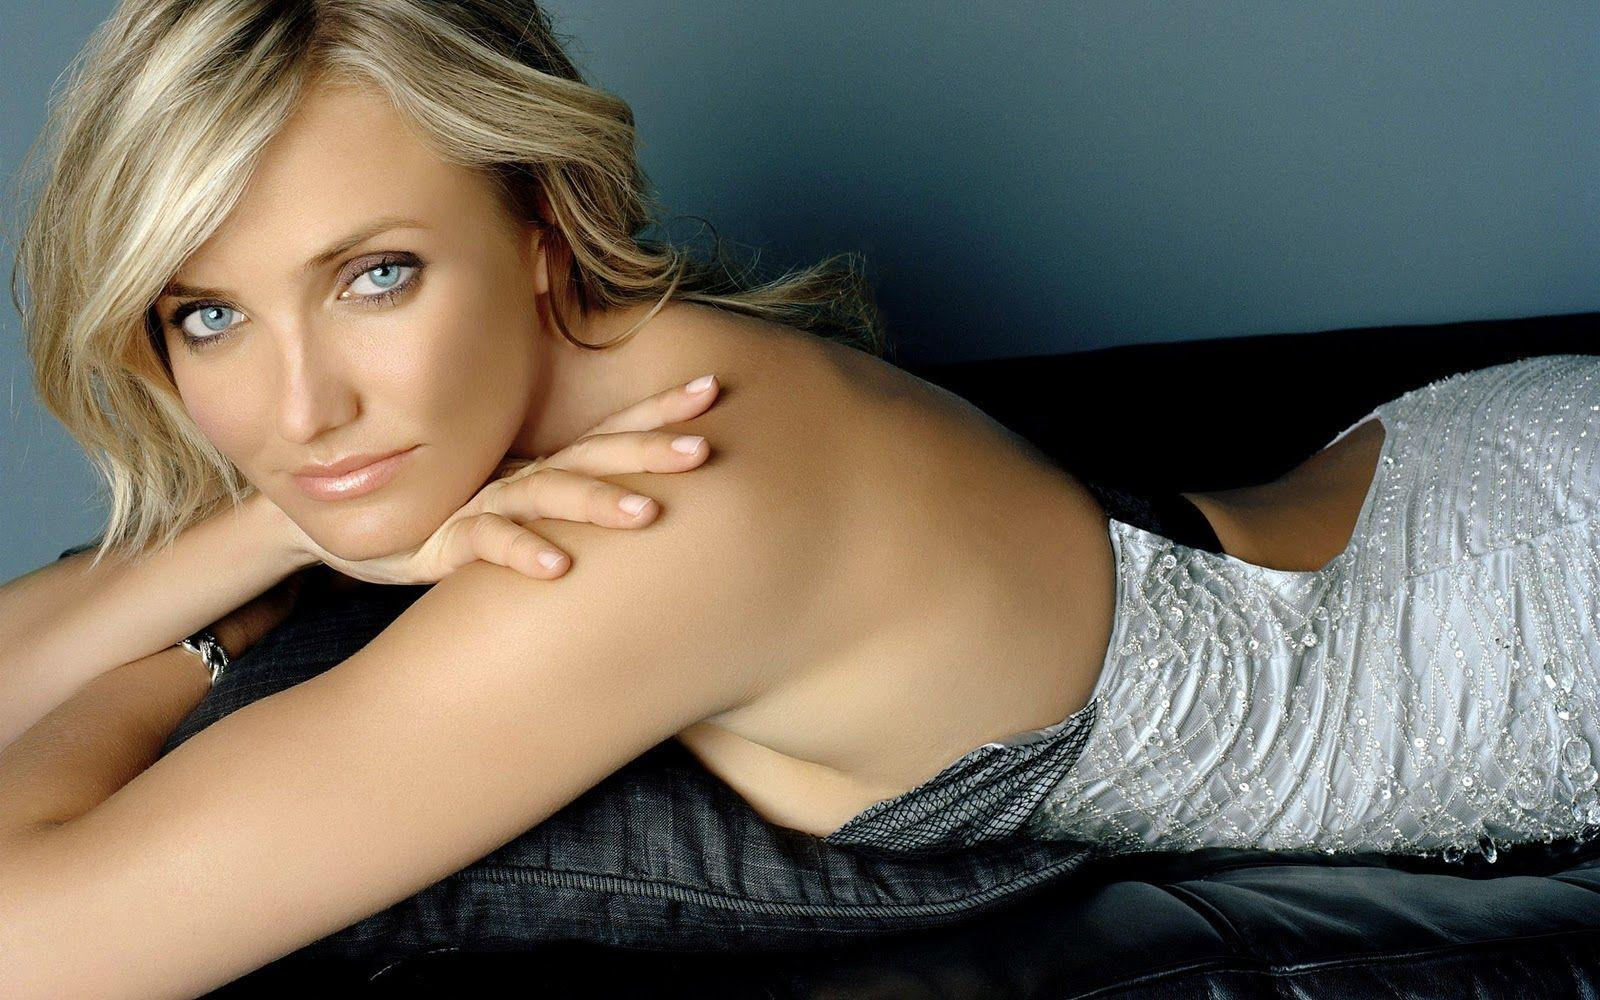 Cameron Diaz Wallpapers - Best HD Desktop Wallpaper